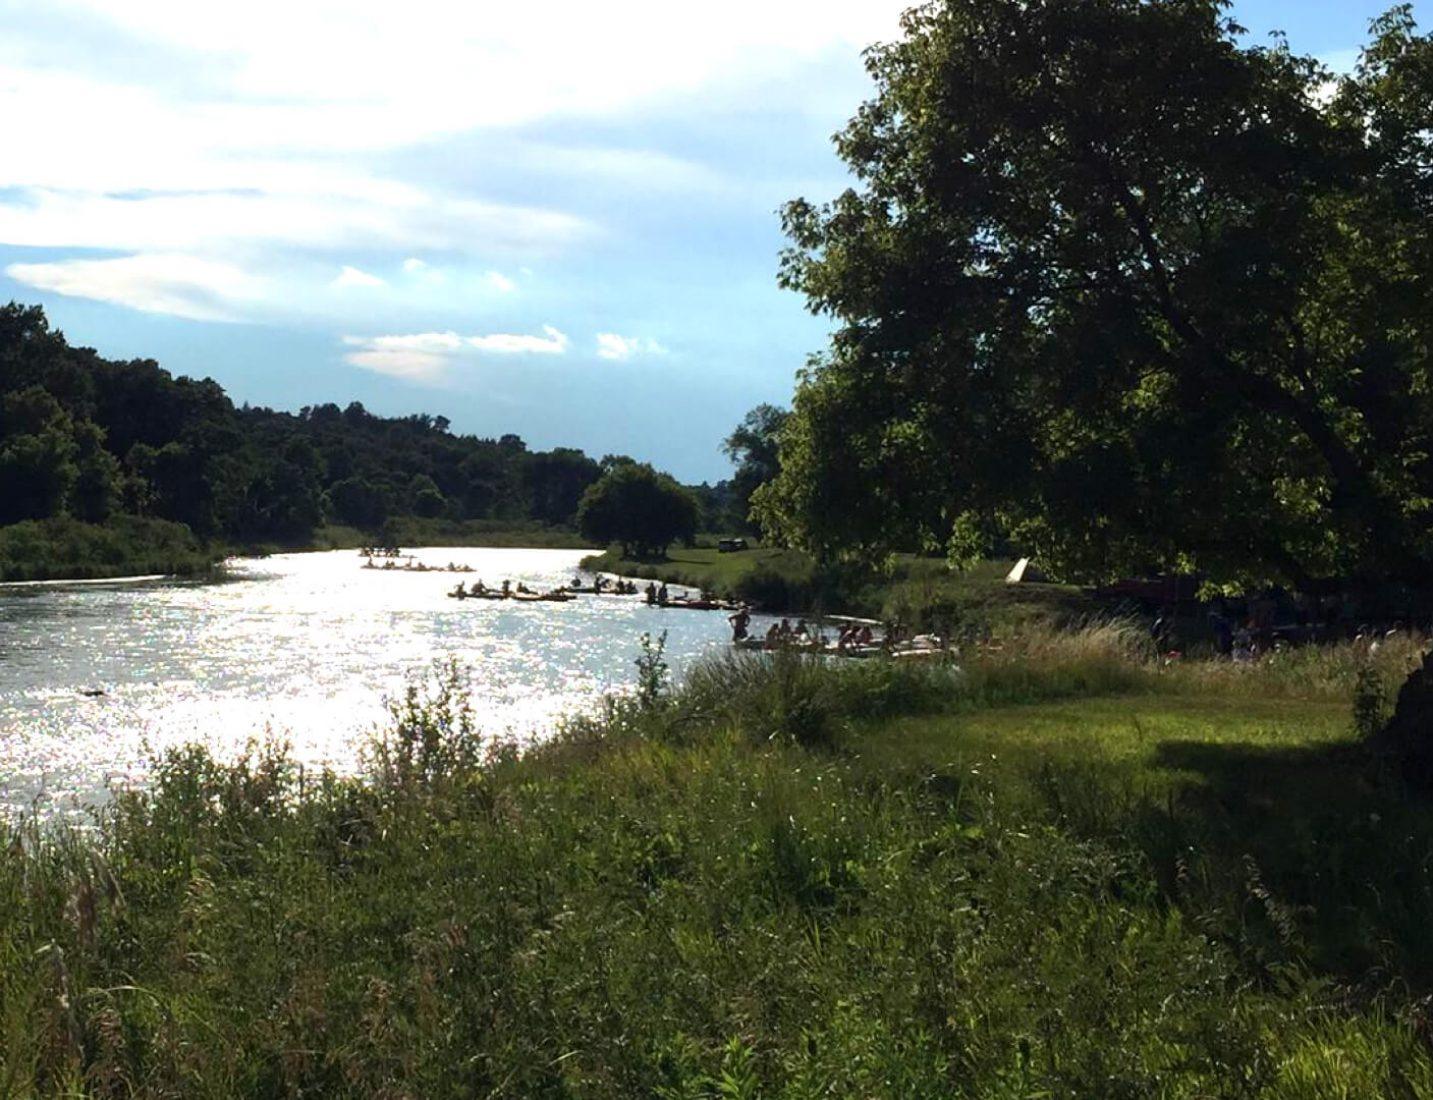 Niobrara River with tubes and canoes